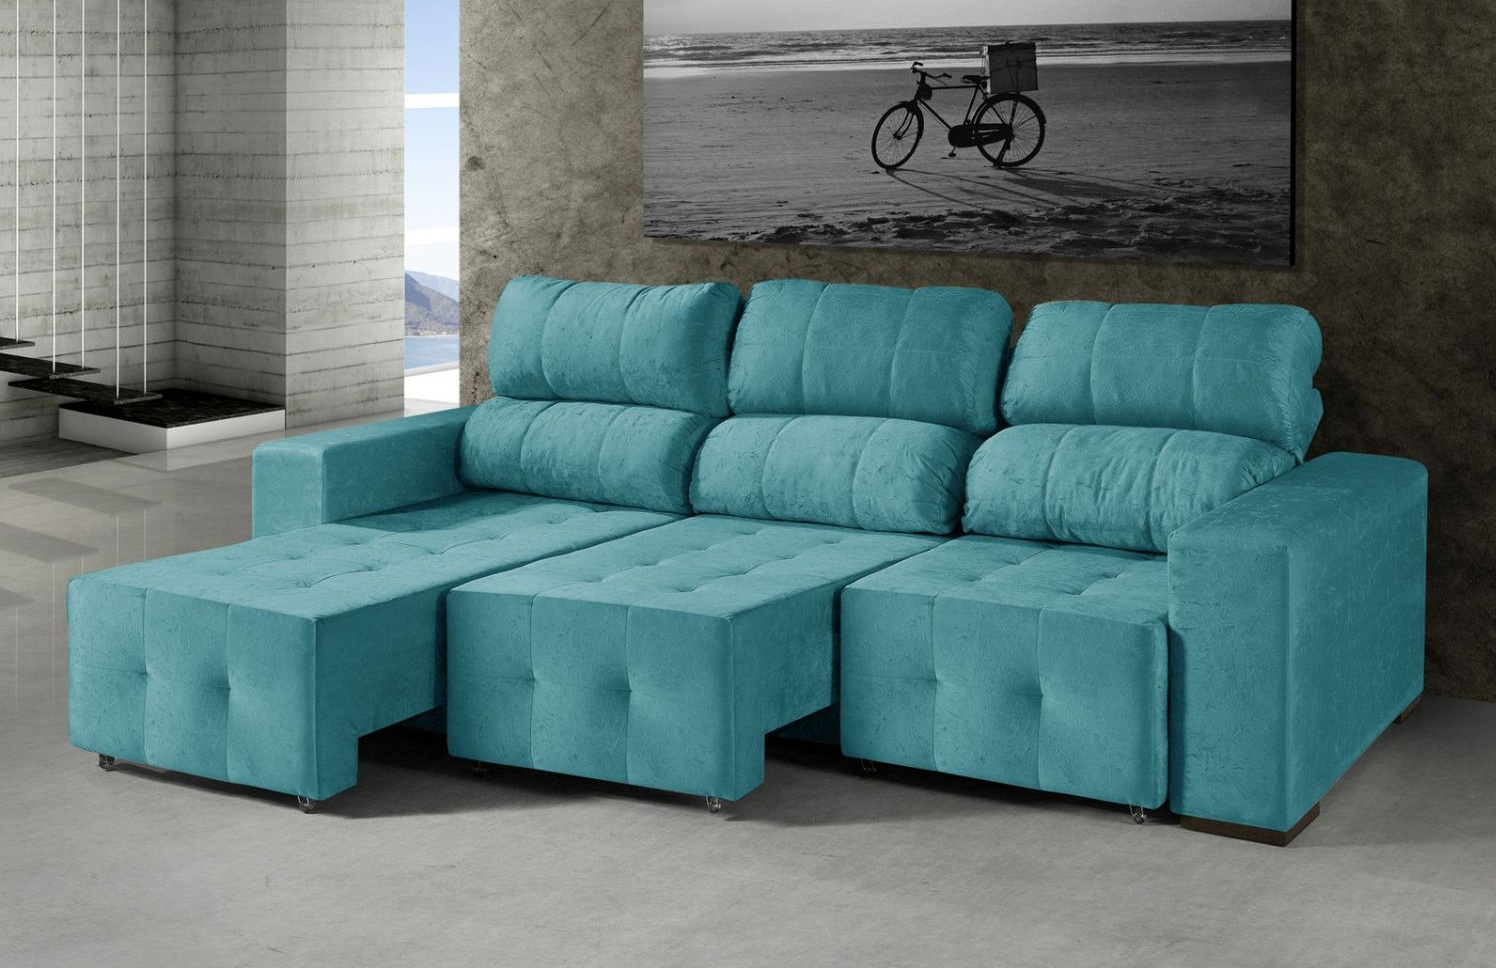 Sofa Sale  Benefits and Tips When Finding Bargains  Sofas for Sale